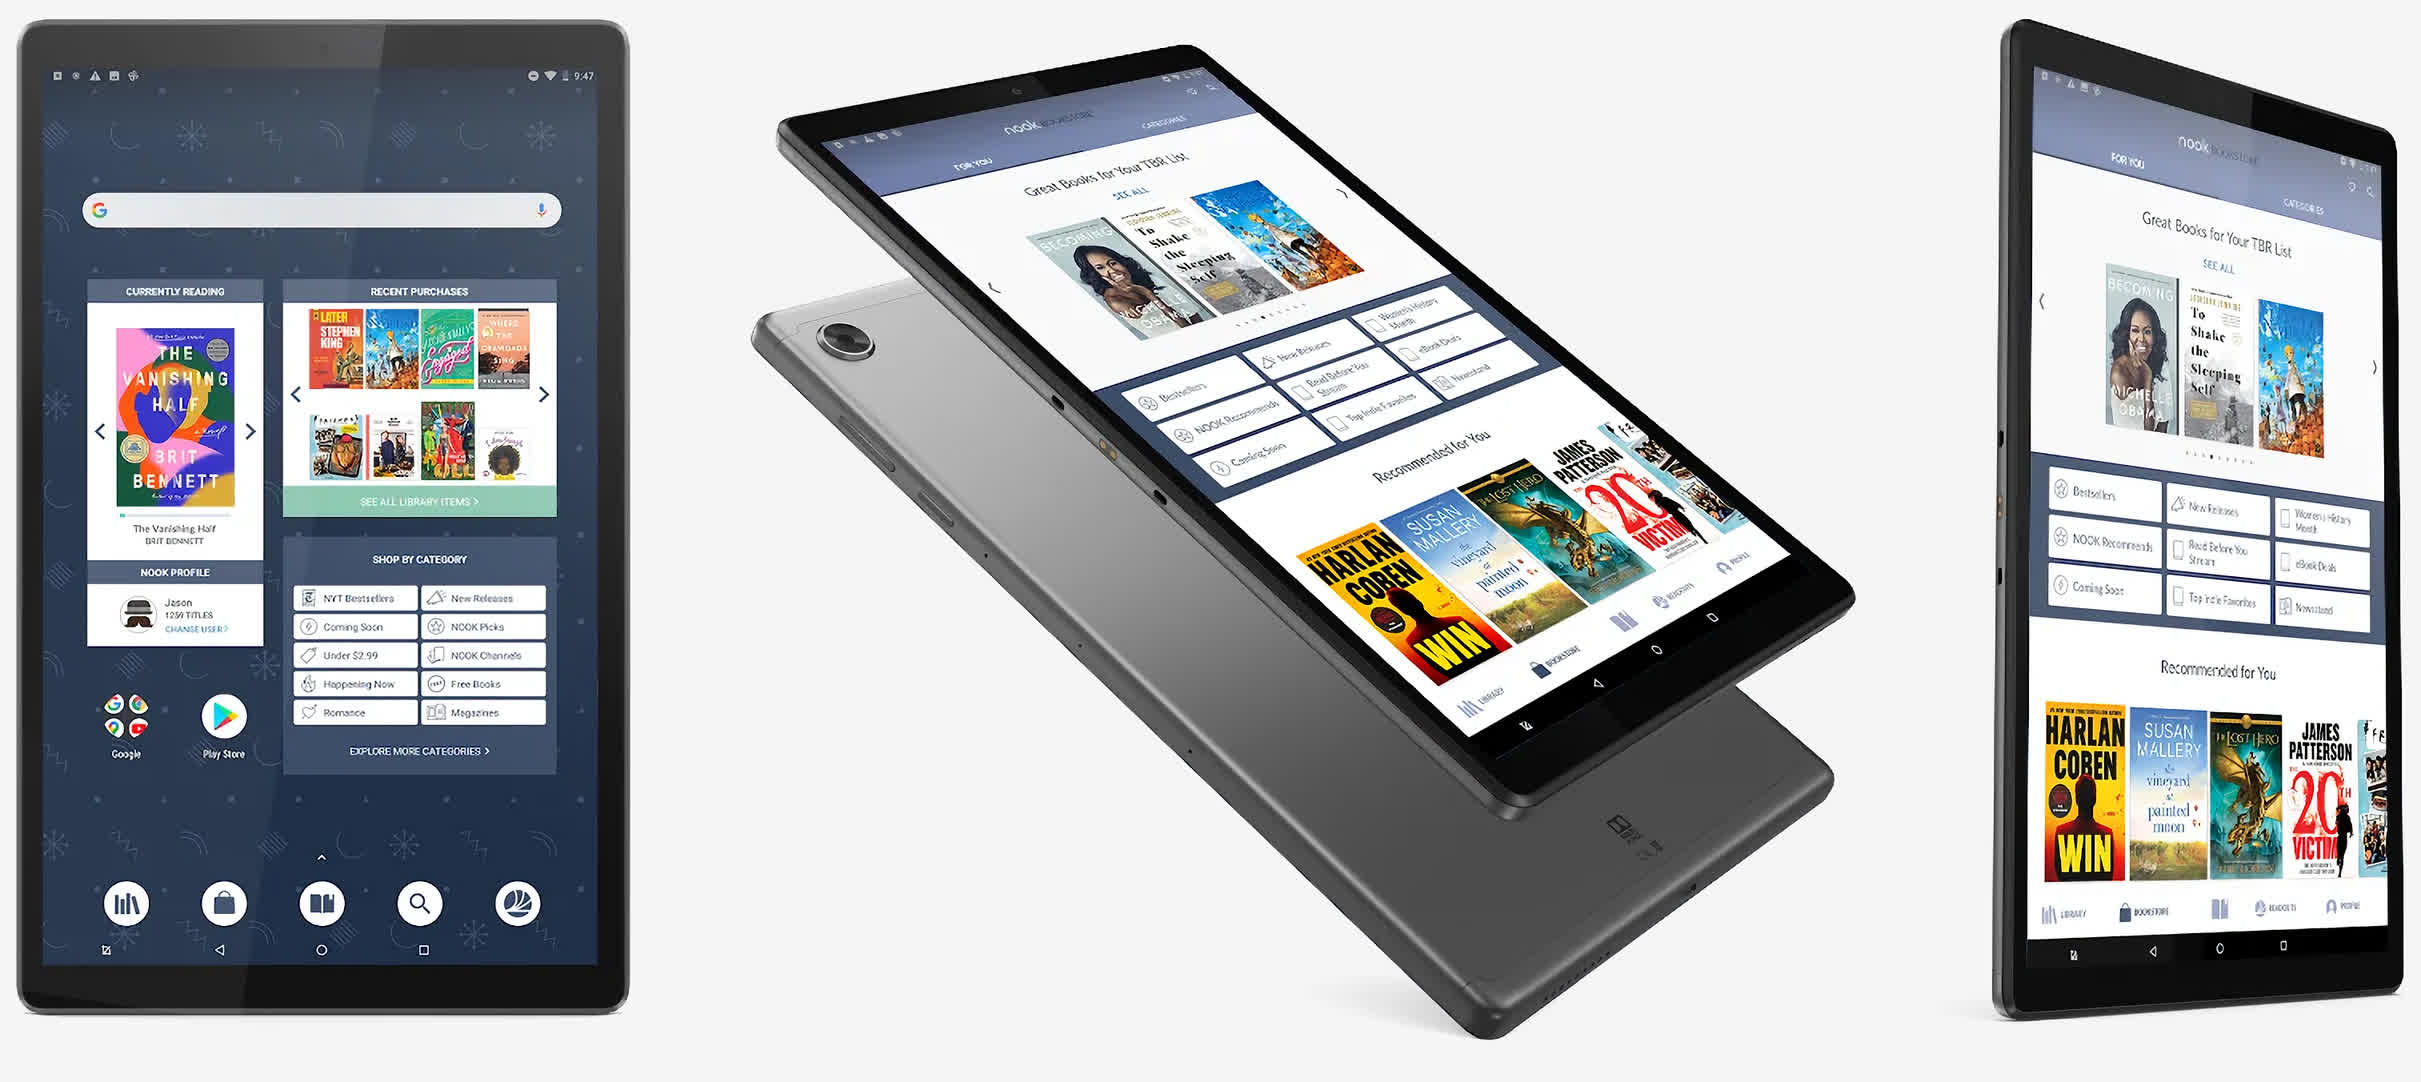 Barnes & Noble partners with Lenovo on its latest 10-inch Nook tablet